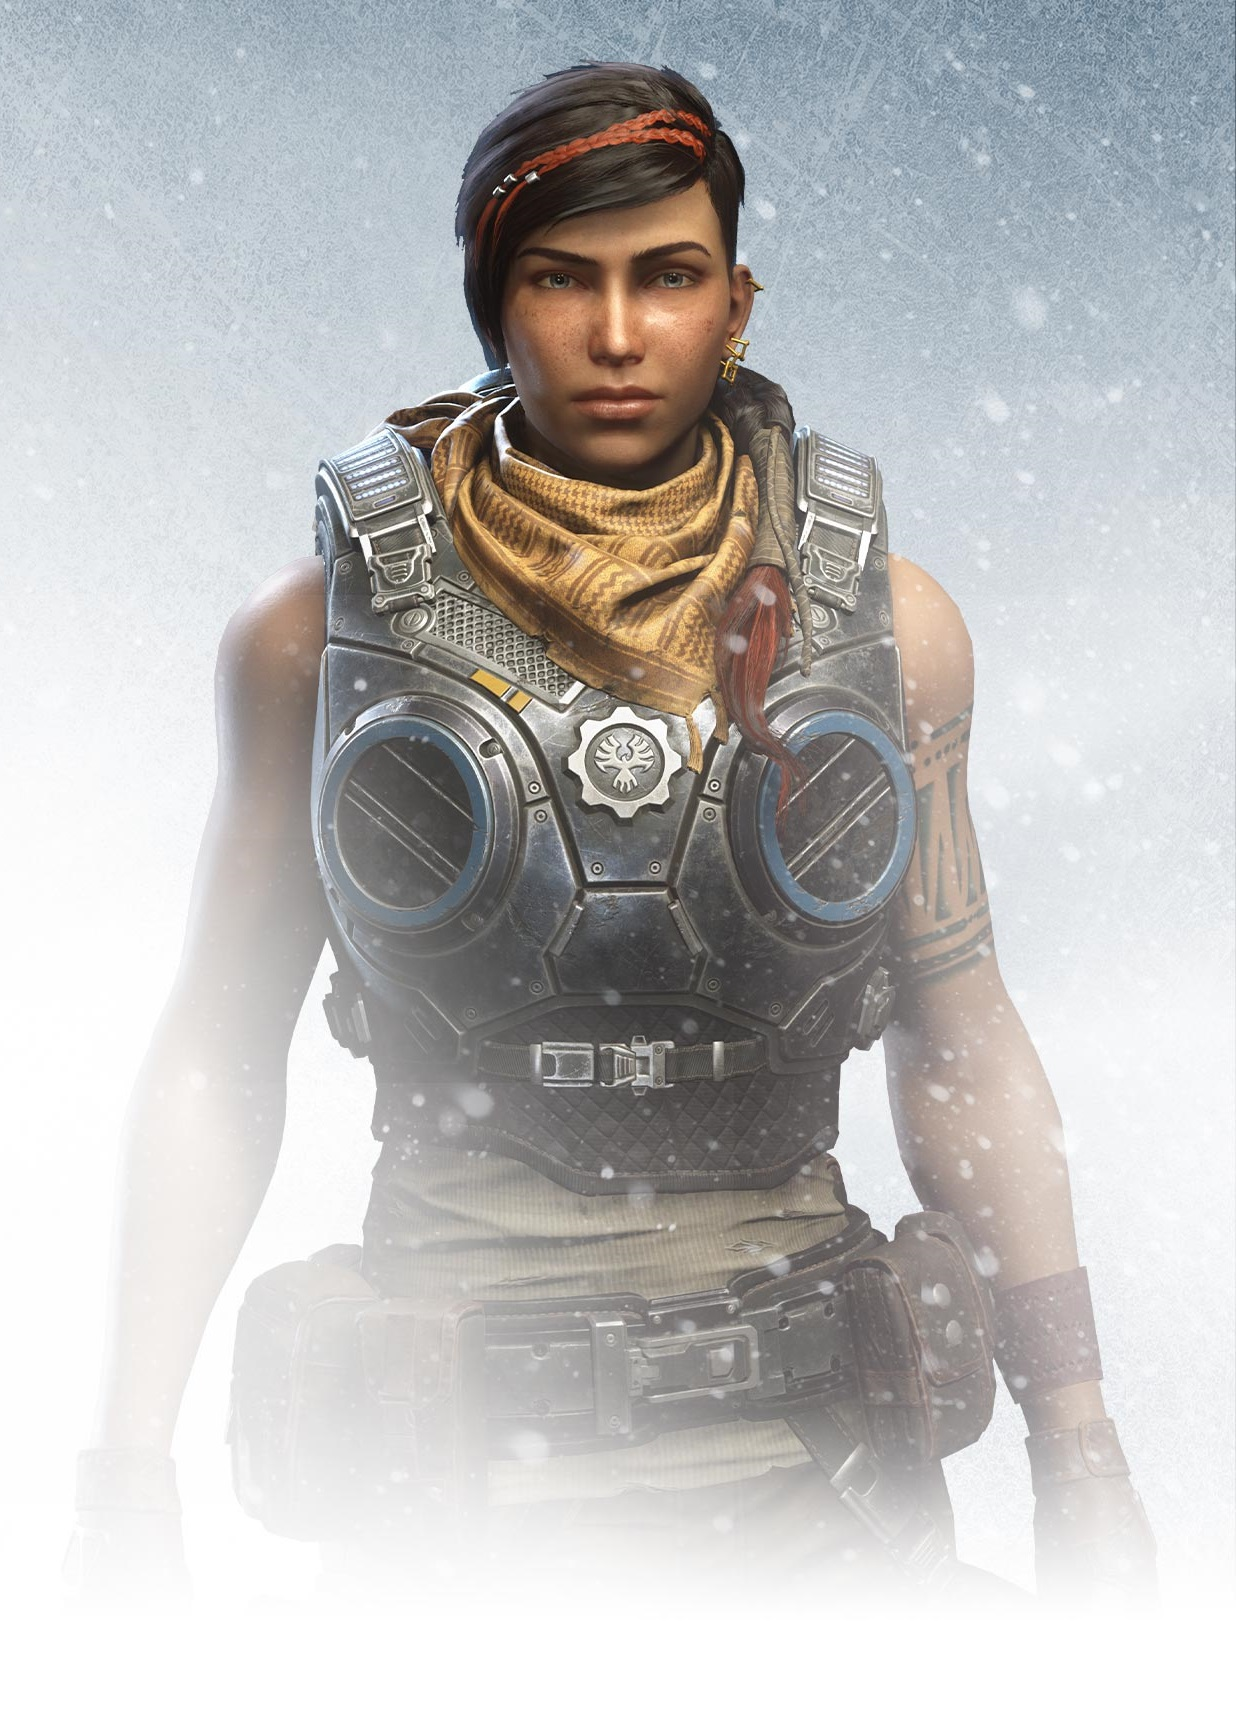 Kait Diaz | Gears of War | FANDOM powered by Wikia